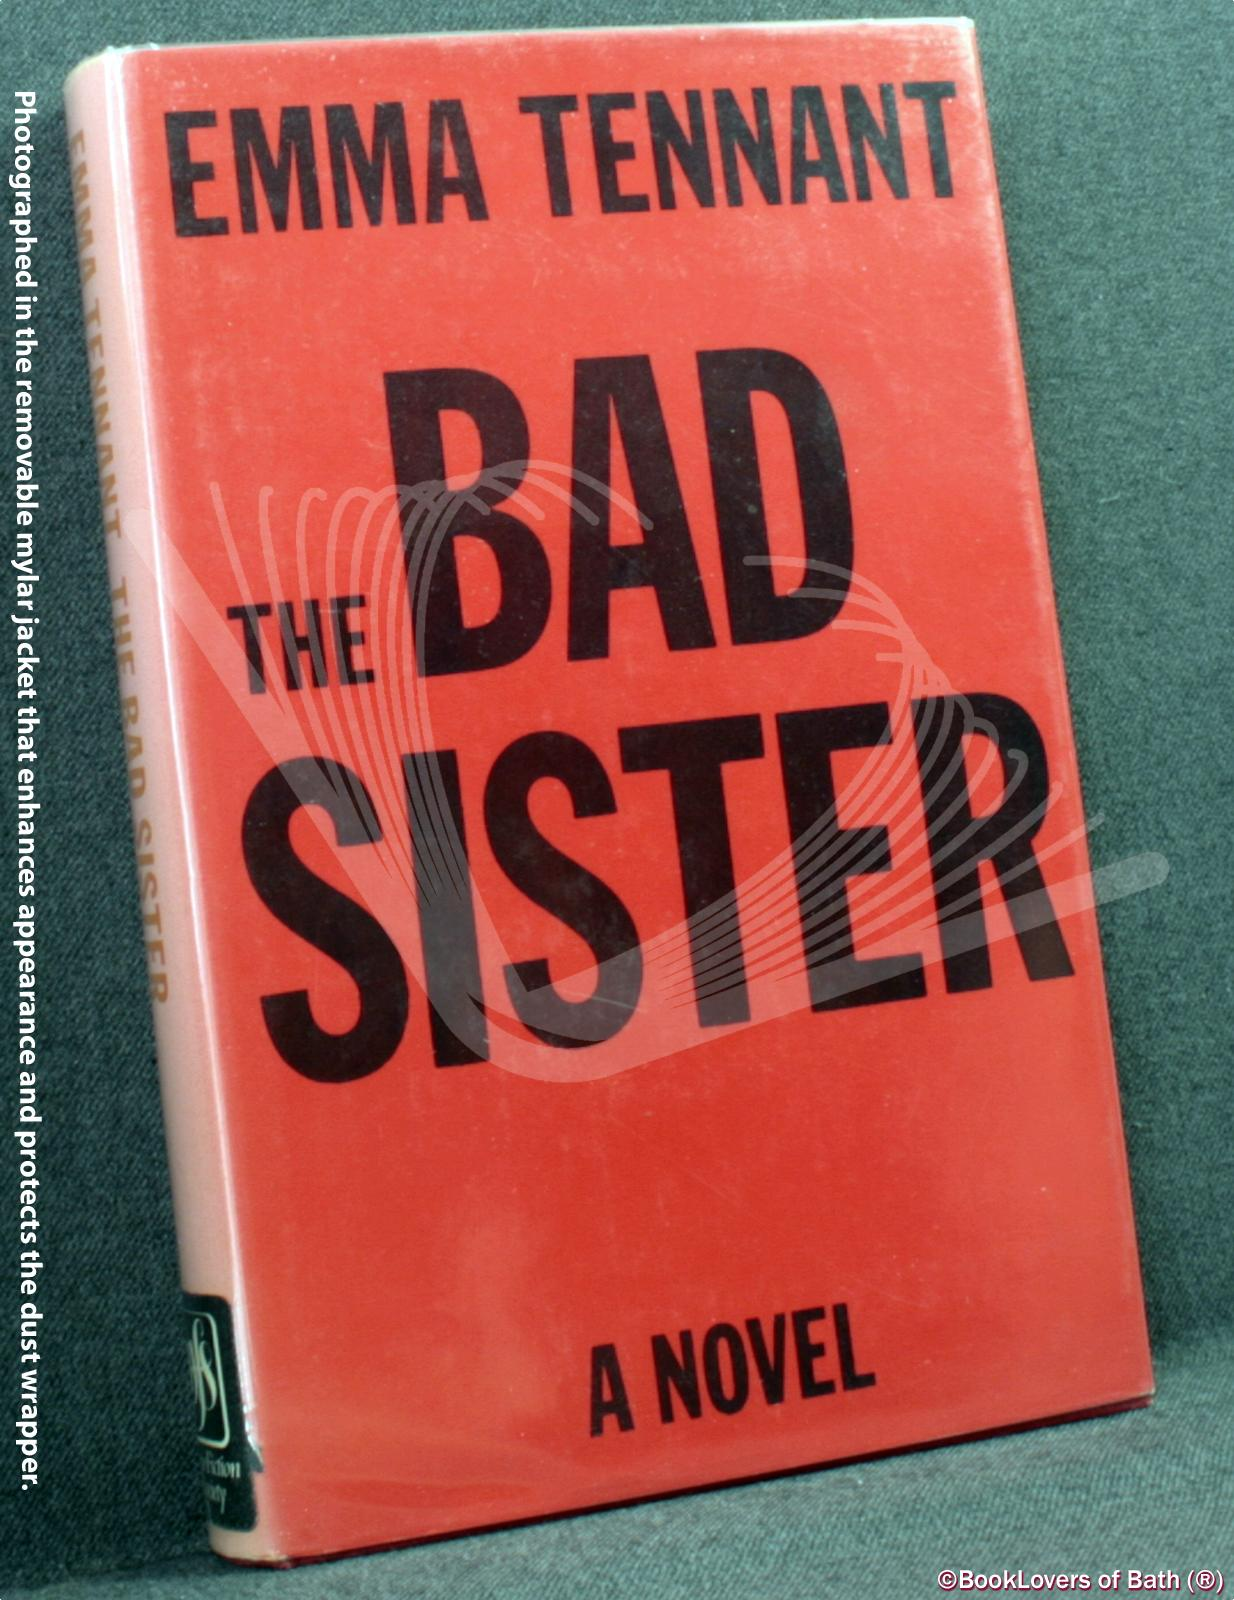 The Bad Sister: A Novel - Emma Tennant